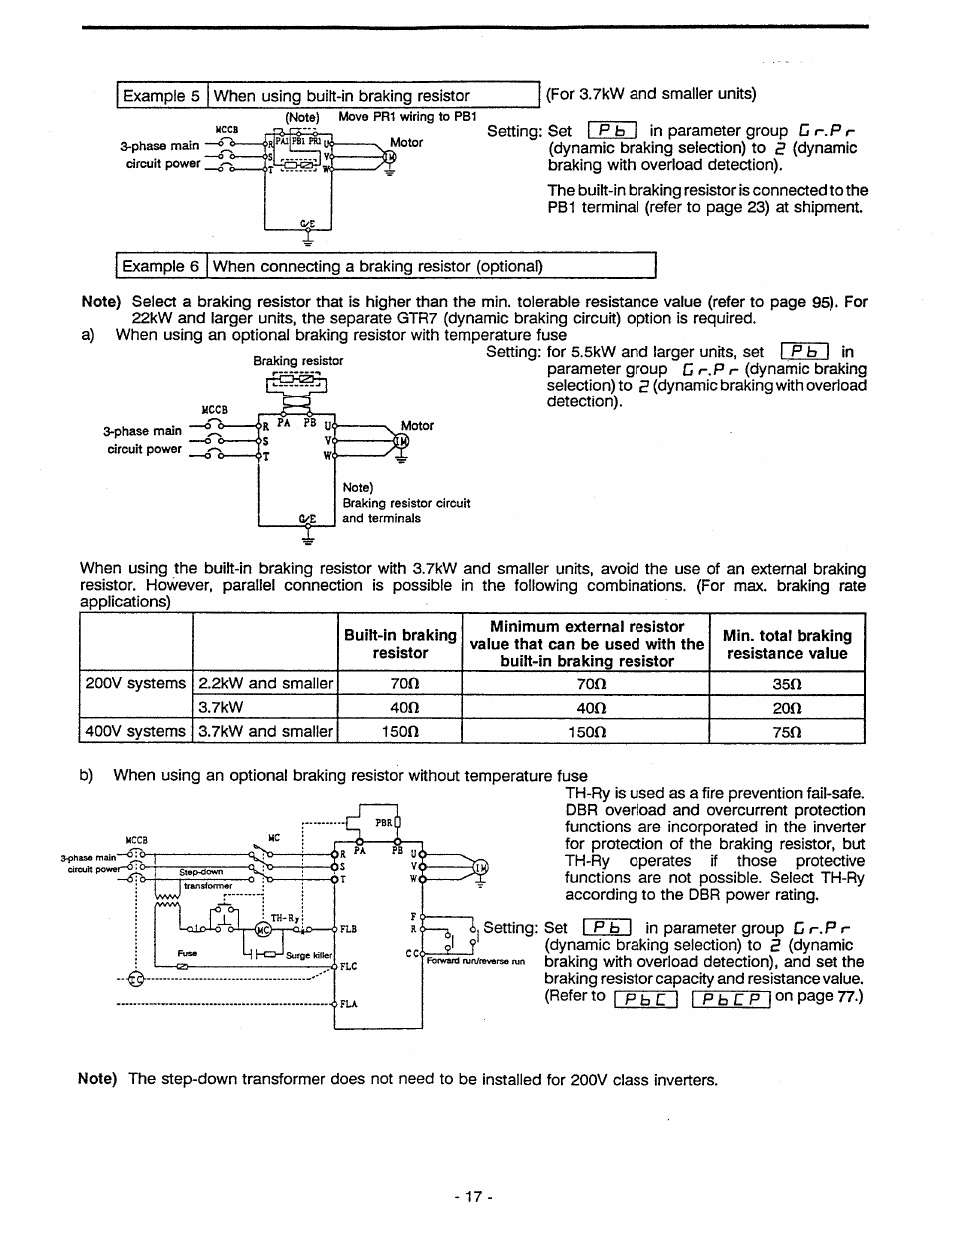 Toshiba Tosvert VF-A5 User Manual | Page 23 / 149 on 3 phase single line diagram, 3 phase electrical meters, 3 phase motor schematic, 3 phase motor testing, 3 phase water heater wiring diagram, 3 phase subpanel, baldor ac motor diagrams, basic electrical schematic diagrams, 3 phase motor troubleshooting guide, 3 phase plug, three-phase transformer banks diagrams, 3 phase squirrel cage induction motor, 3 phase to 1 phase wiring diagram, 3 phase motor starter, 3 phase motor speed controller, 3 phase outlet wiring diagram, 3 phase stepper, 3 phase to single phase wiring diagram, 3 phase motor repair, 3 phase motor windings,